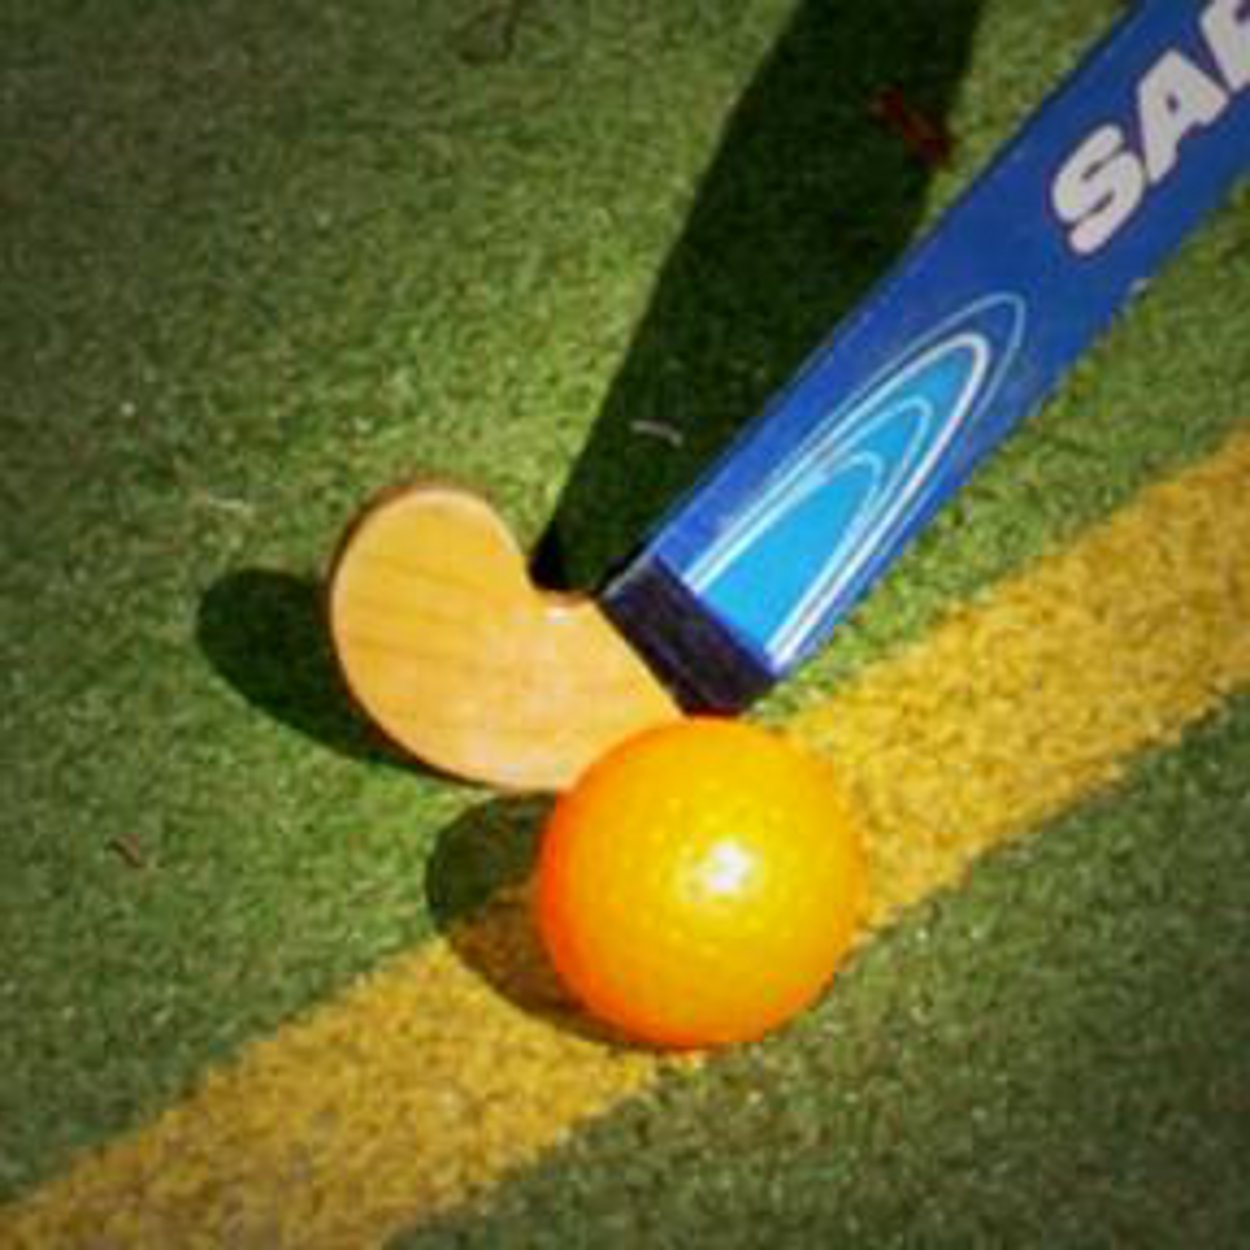 HOCKEY: Turvey hat-trick fires thirds to victory